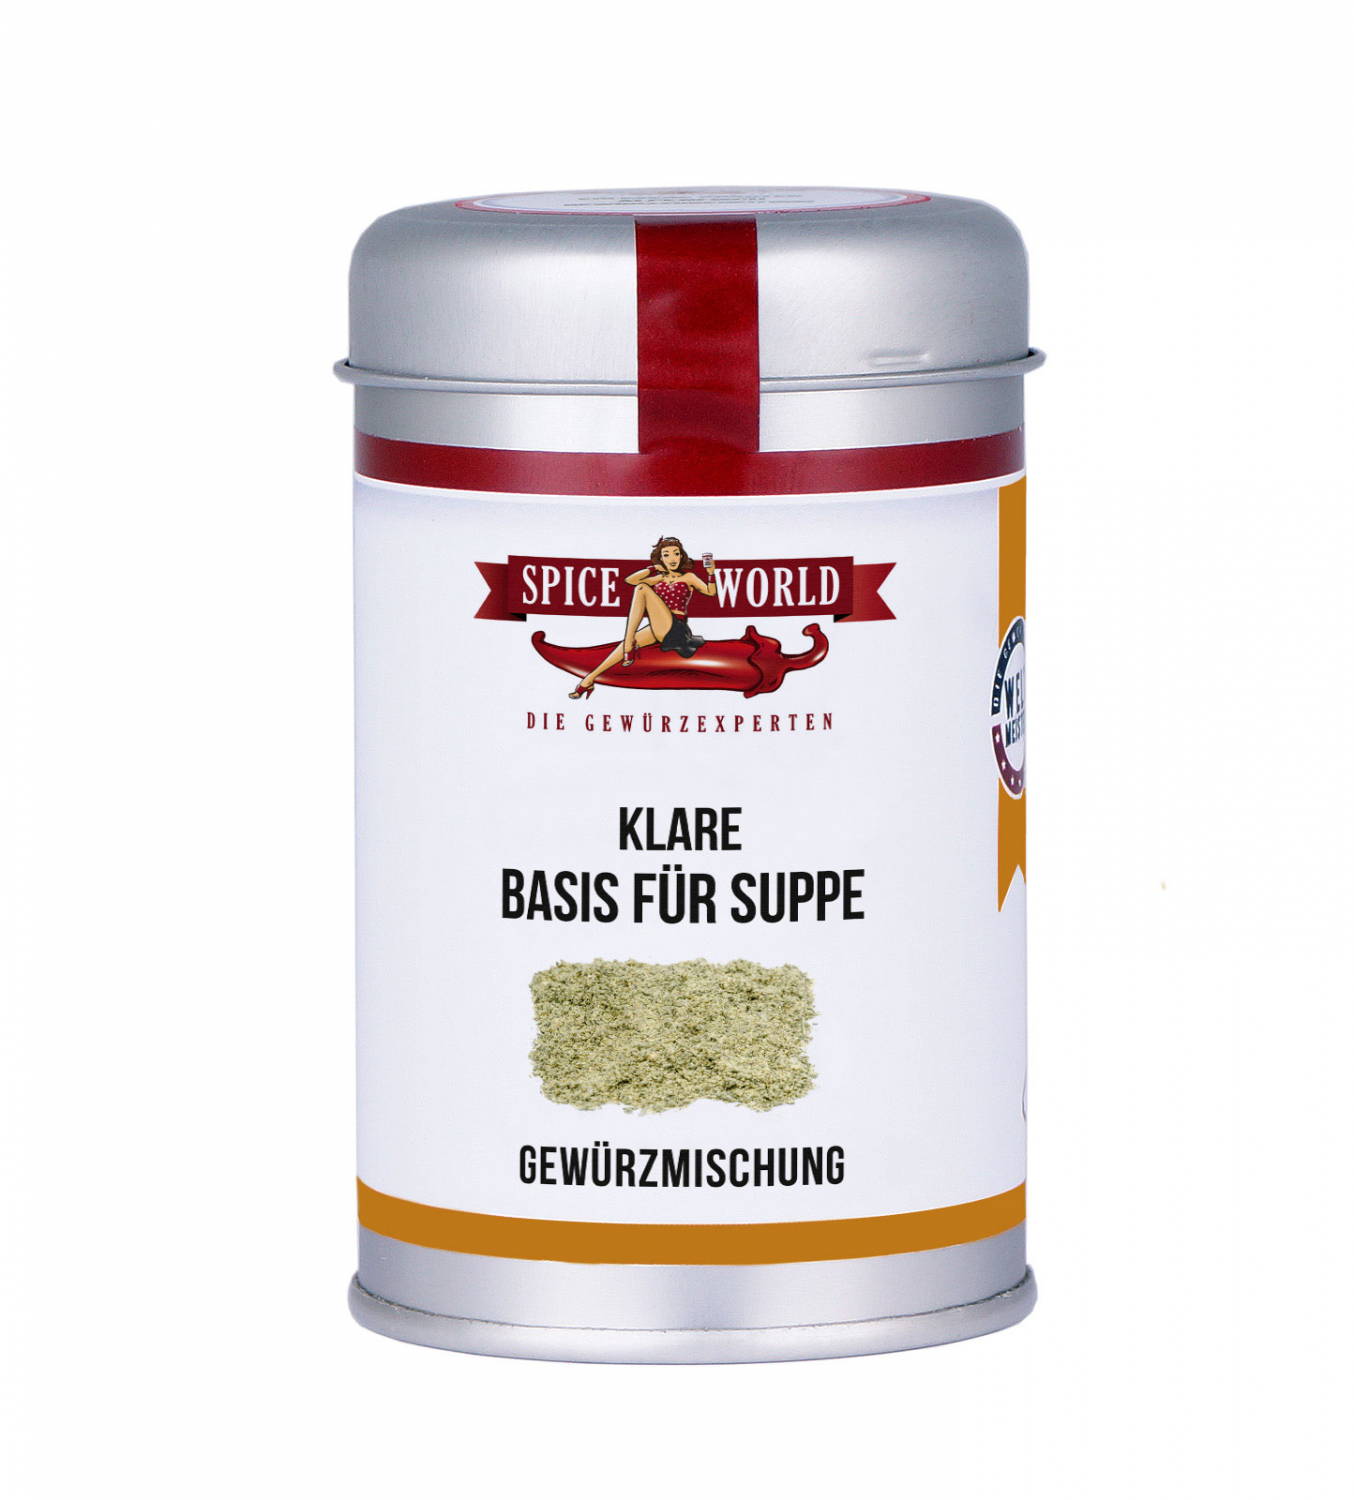 Basis Suppe, 100g Streudose